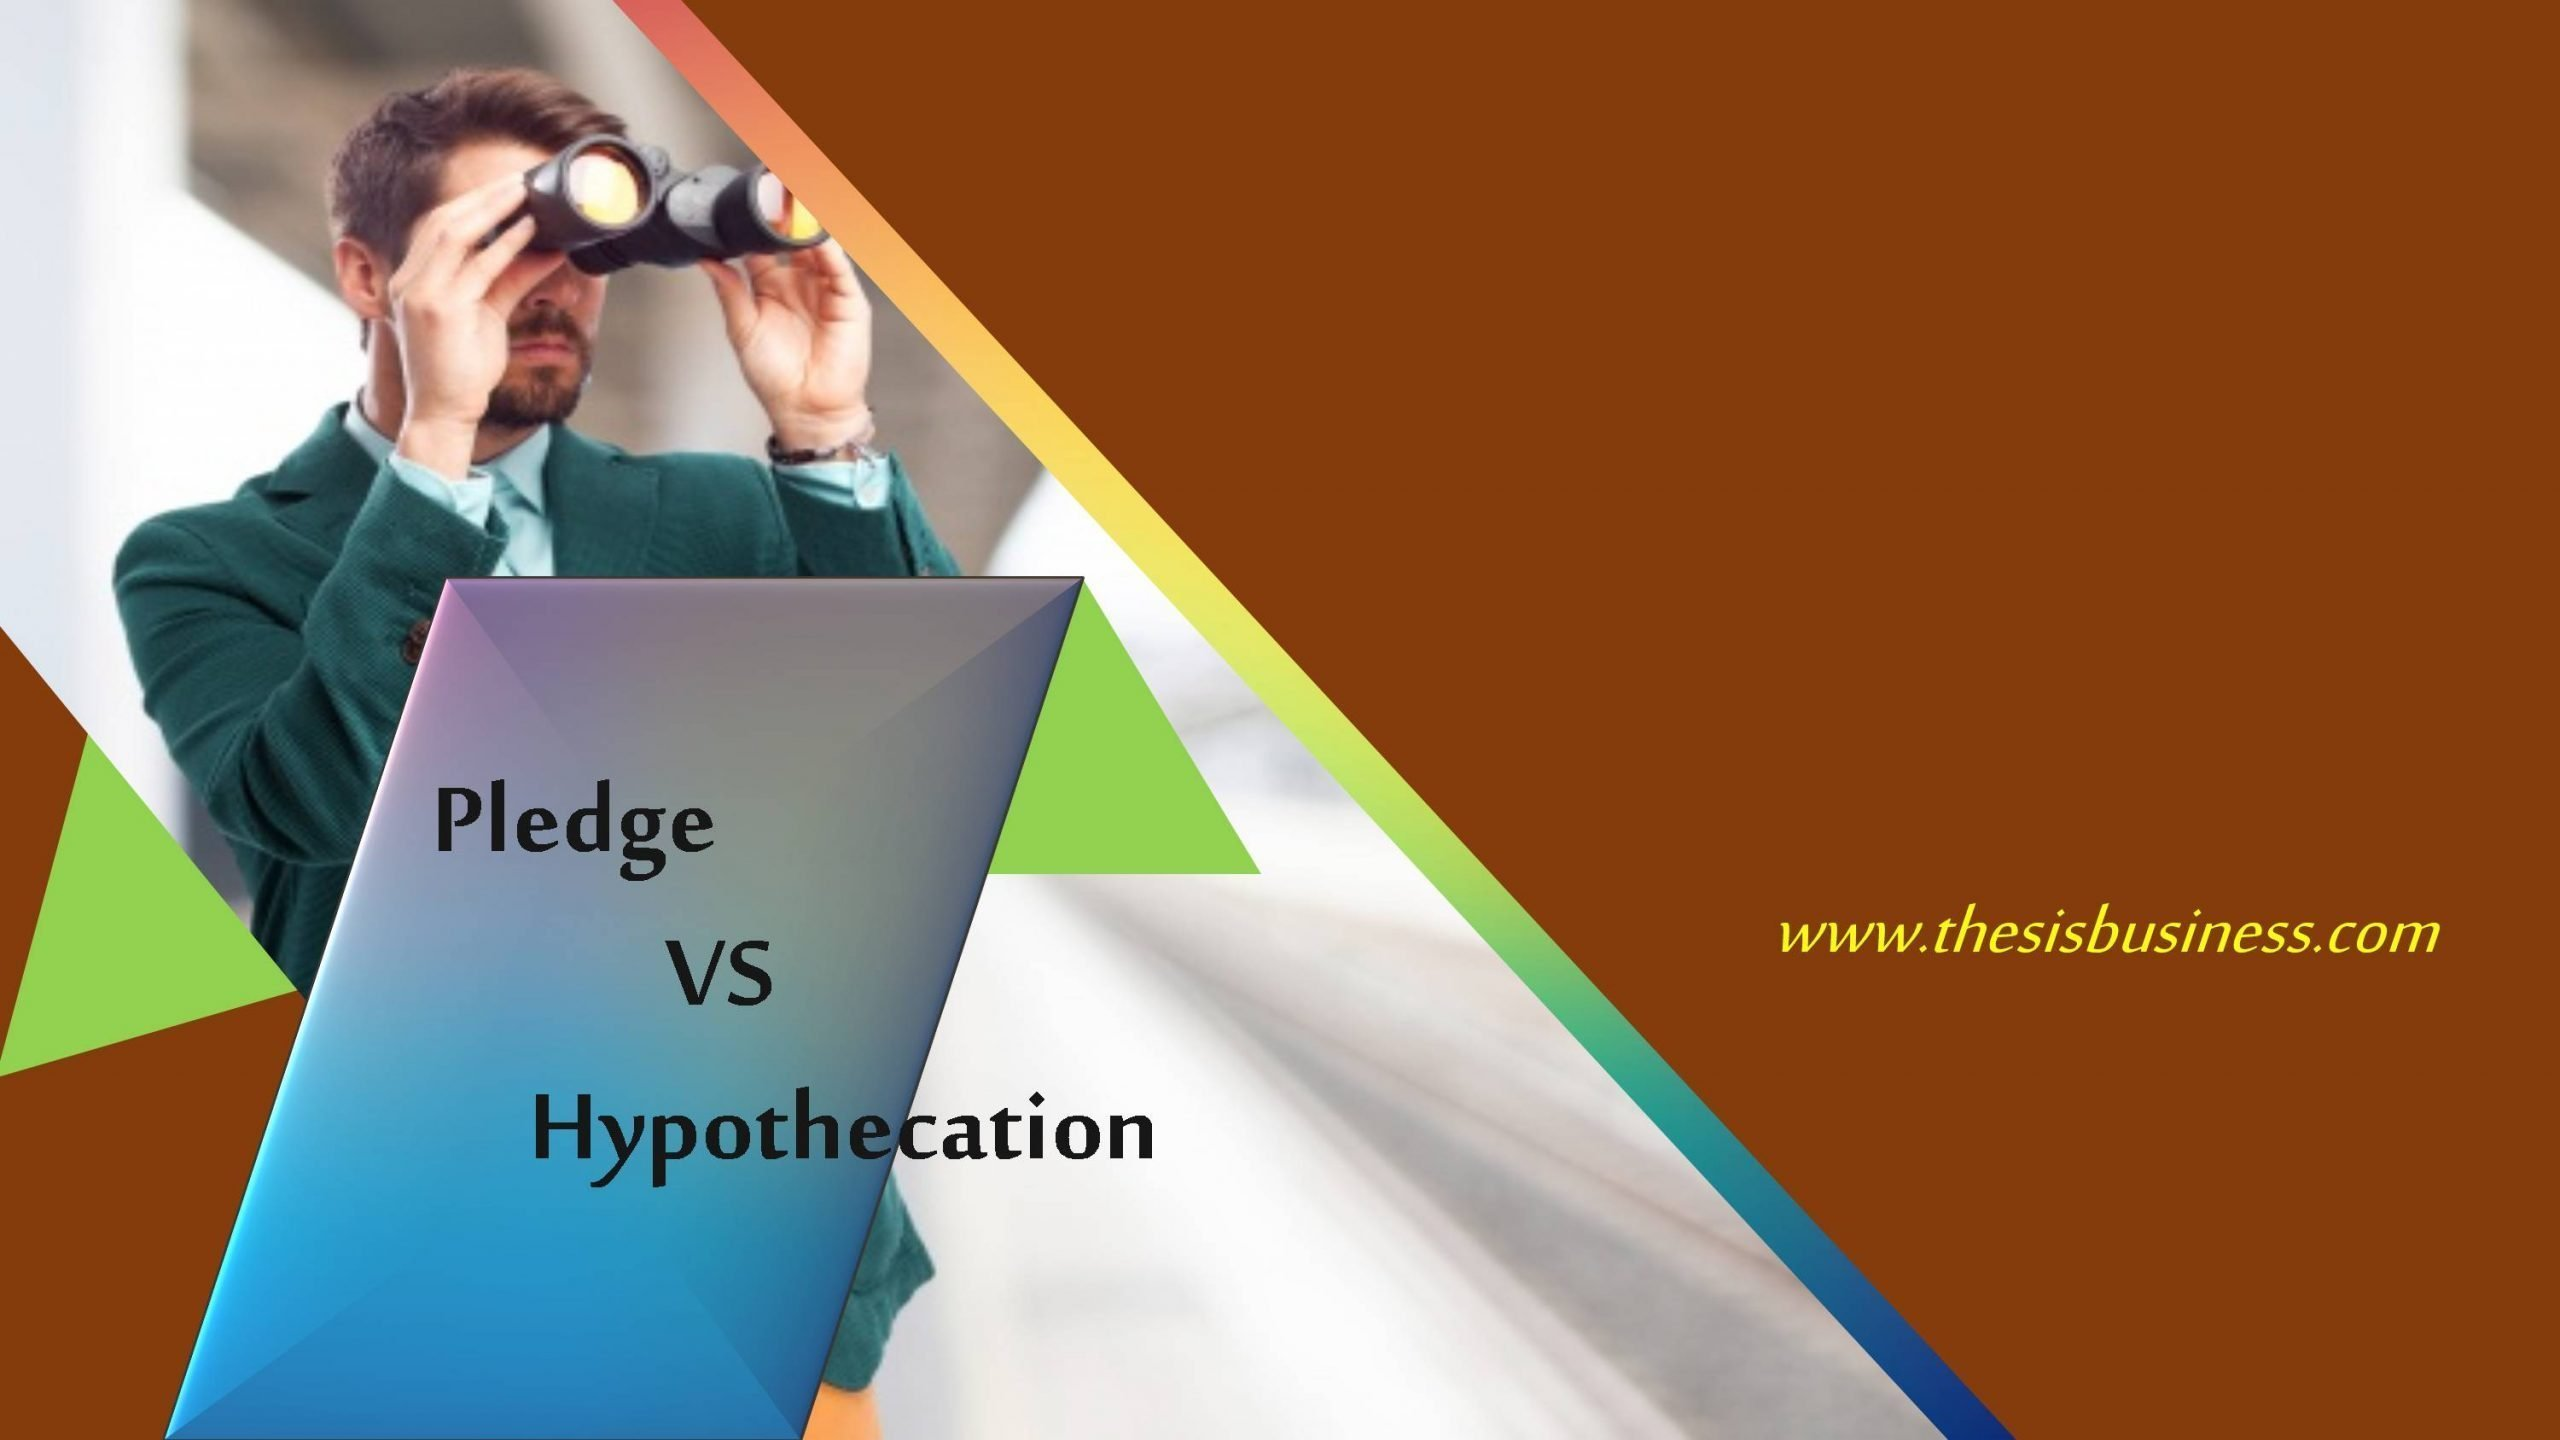 Difference Between Pledge and Hypothecation